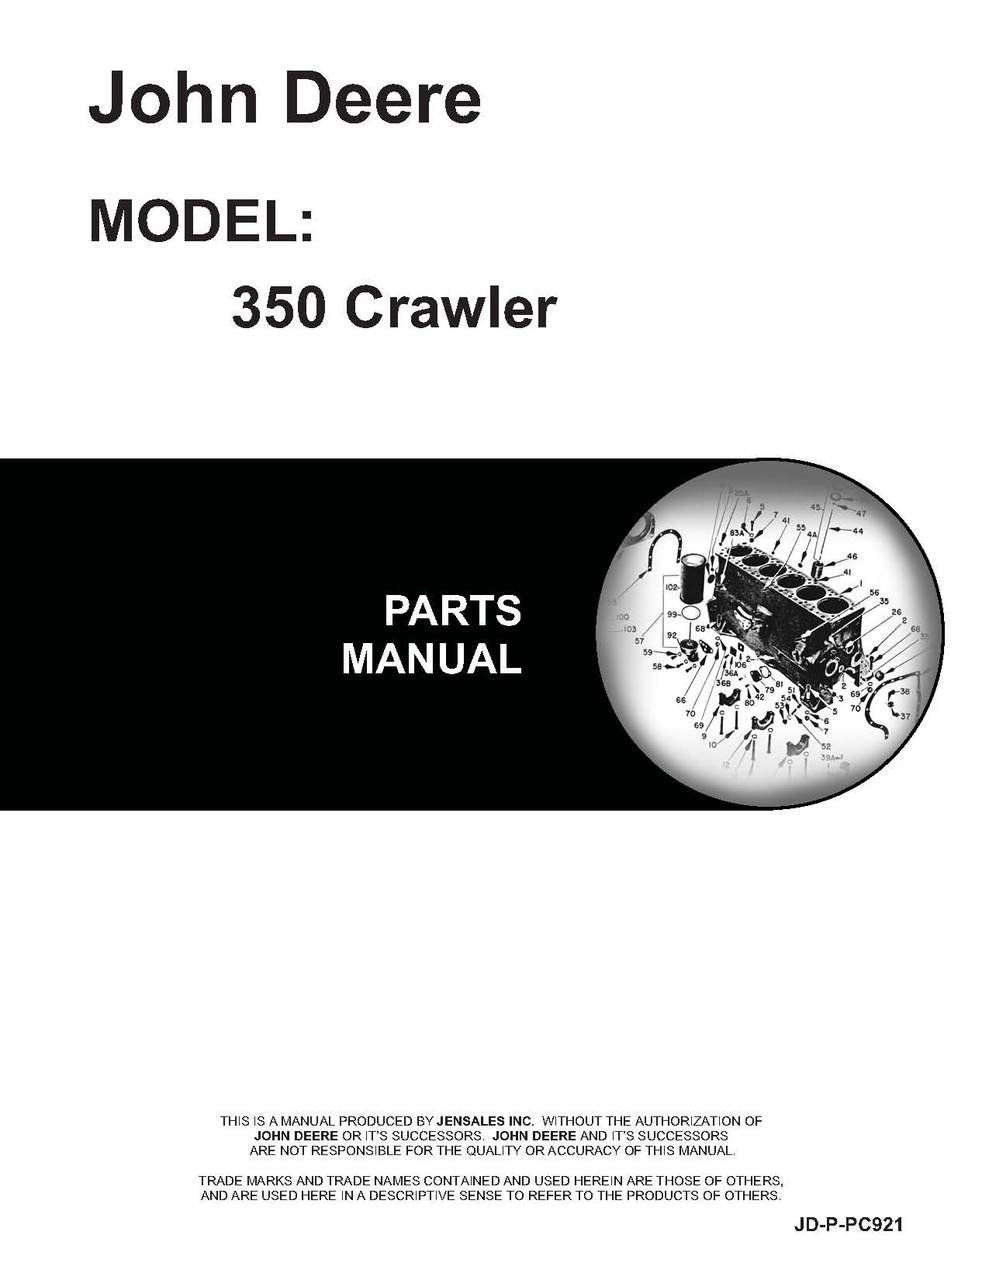 John Deere 350 Crawler Parts Manual pdf